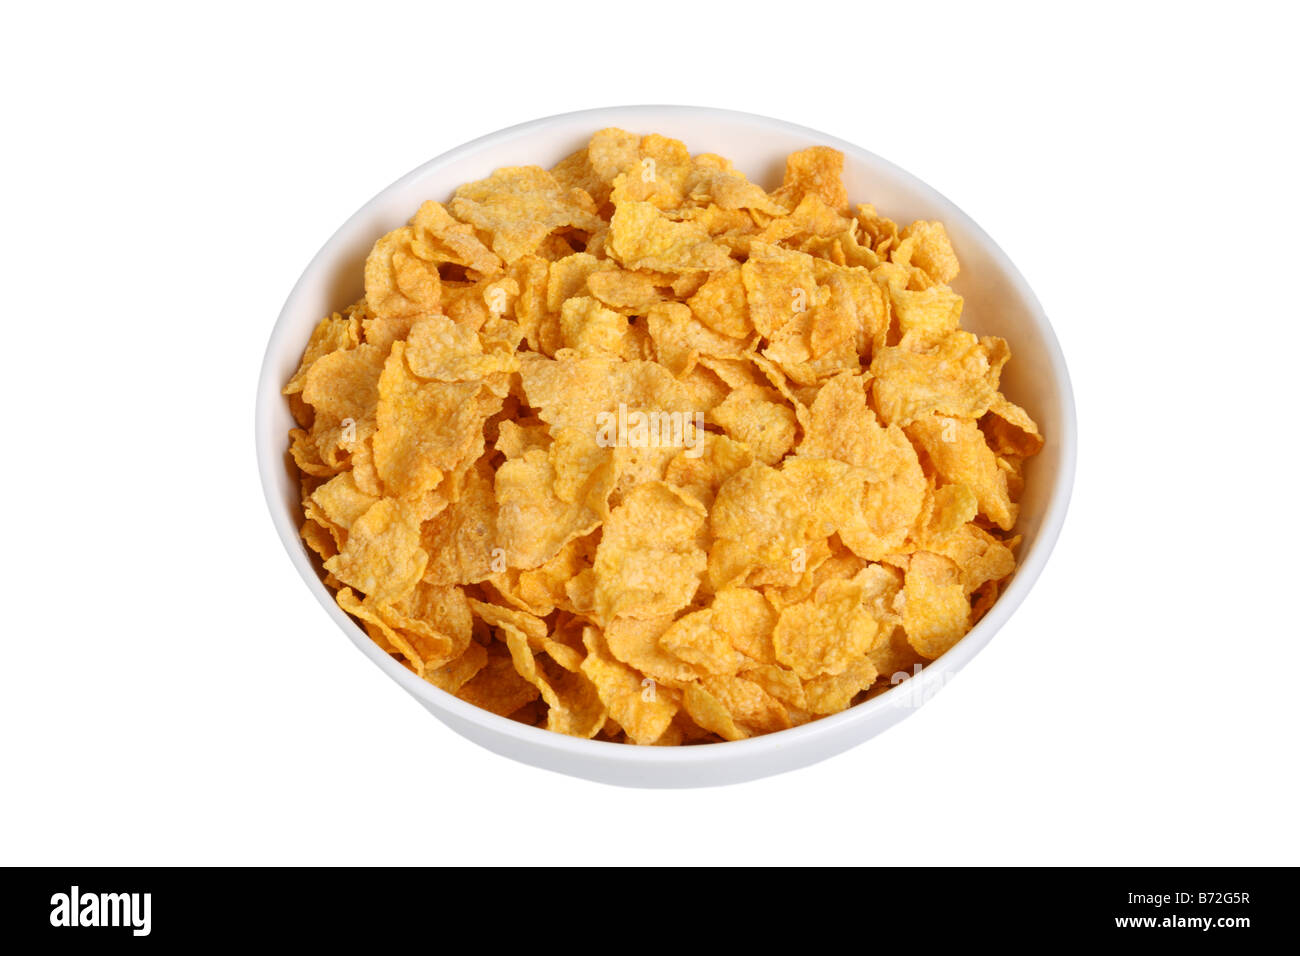 Bowl of cereal cut out isolated on white background - Stock Image